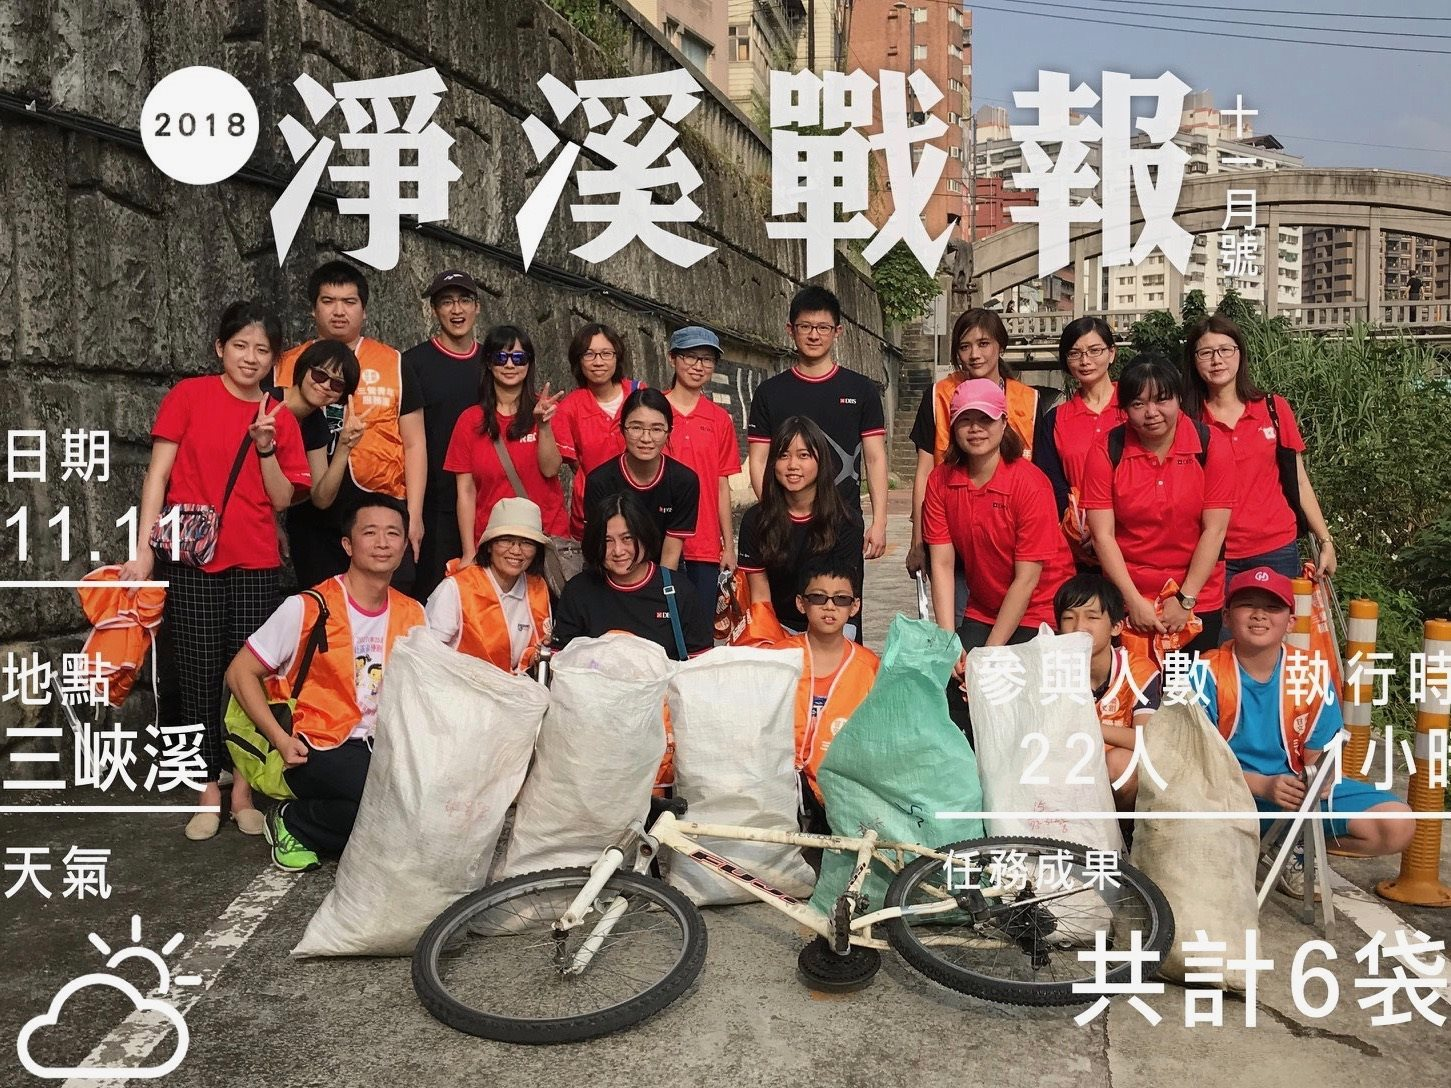 2018/11/11 River Clean-up Operation